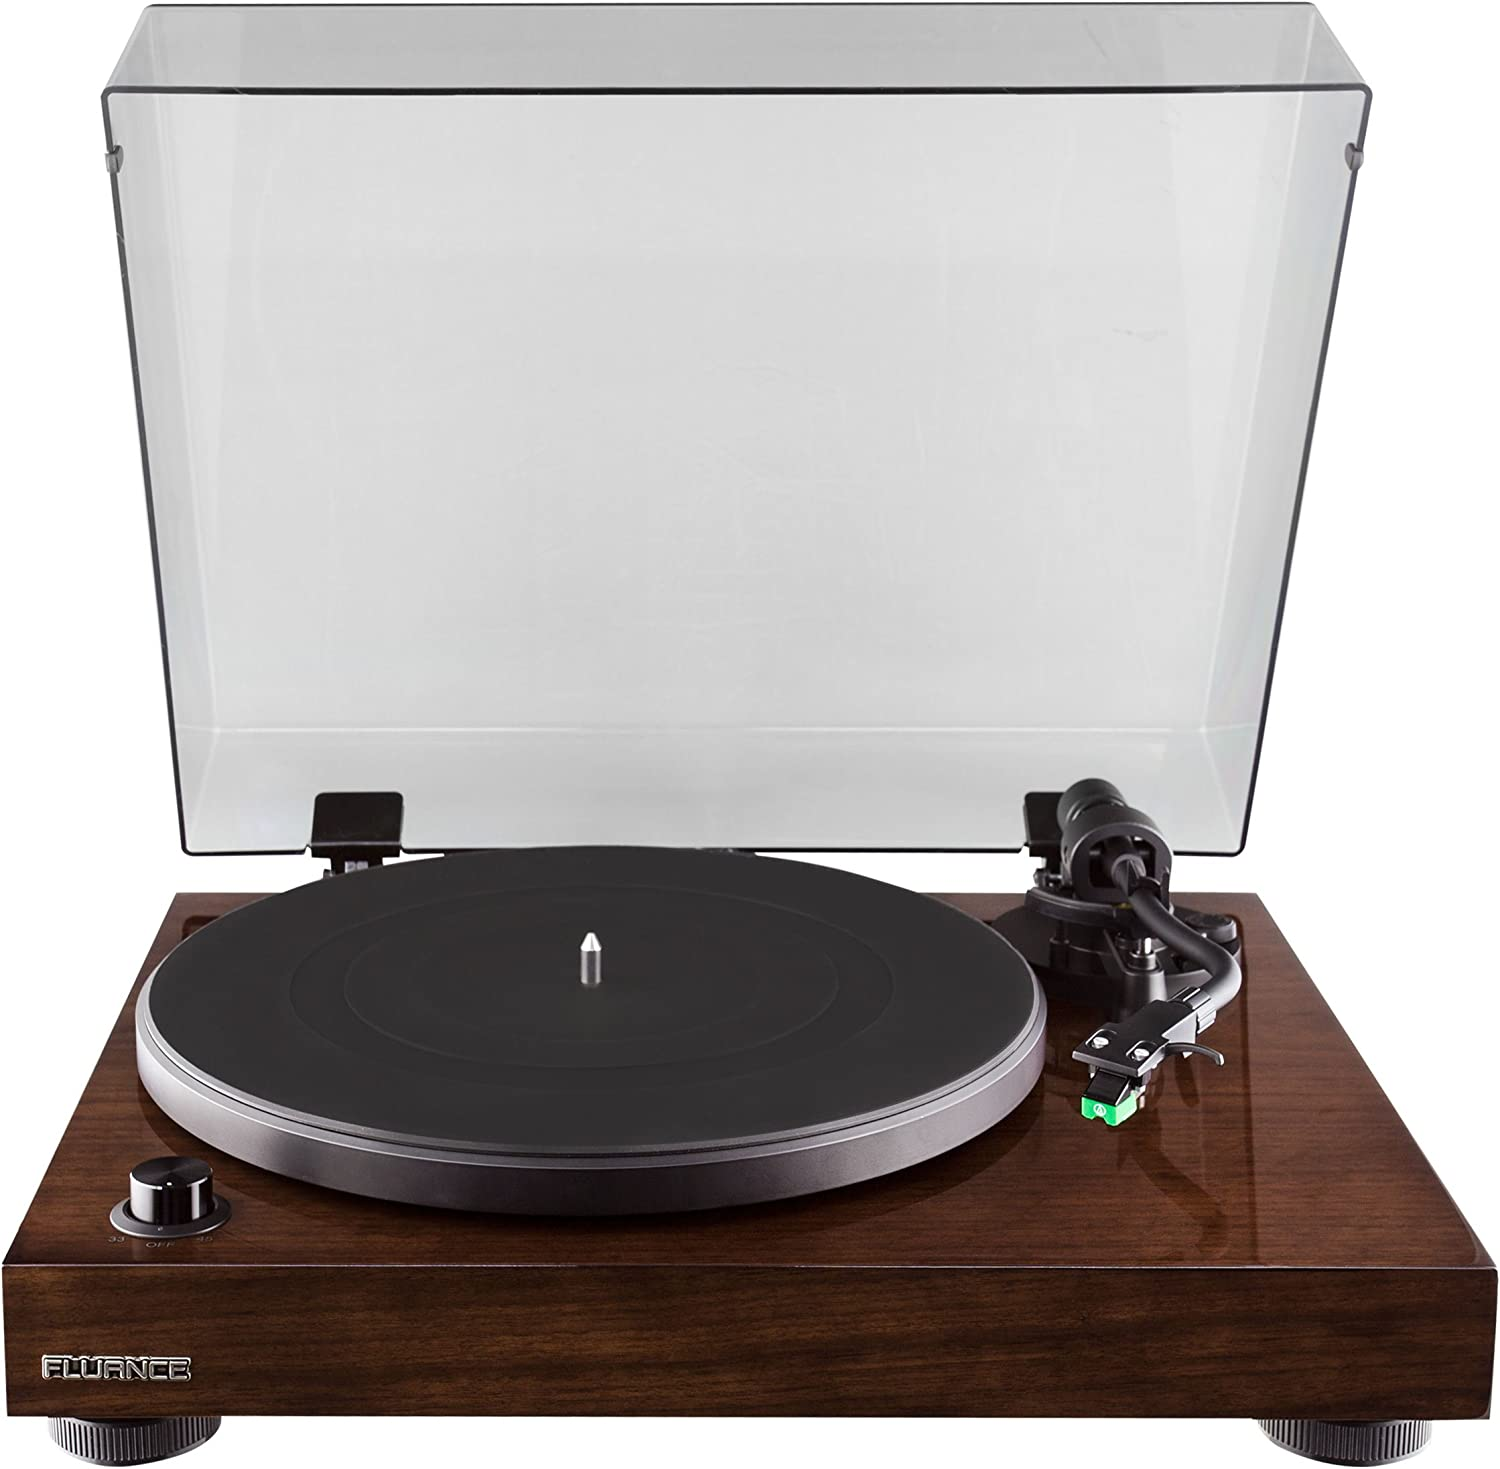 Fluance Vinyl Turntable